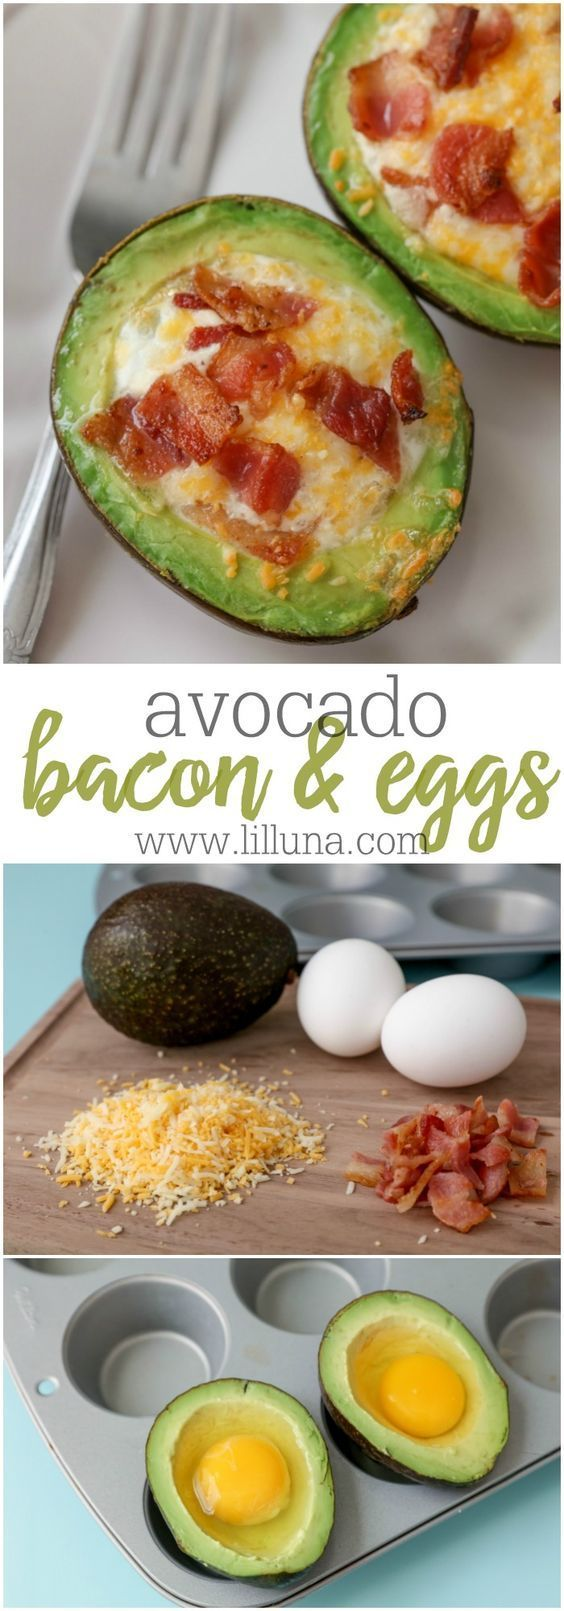 Avocado Eggs Recipe with Variations (+VIDEO) | Lil' Luna -  Avocado Bacon and eggs – one of our f